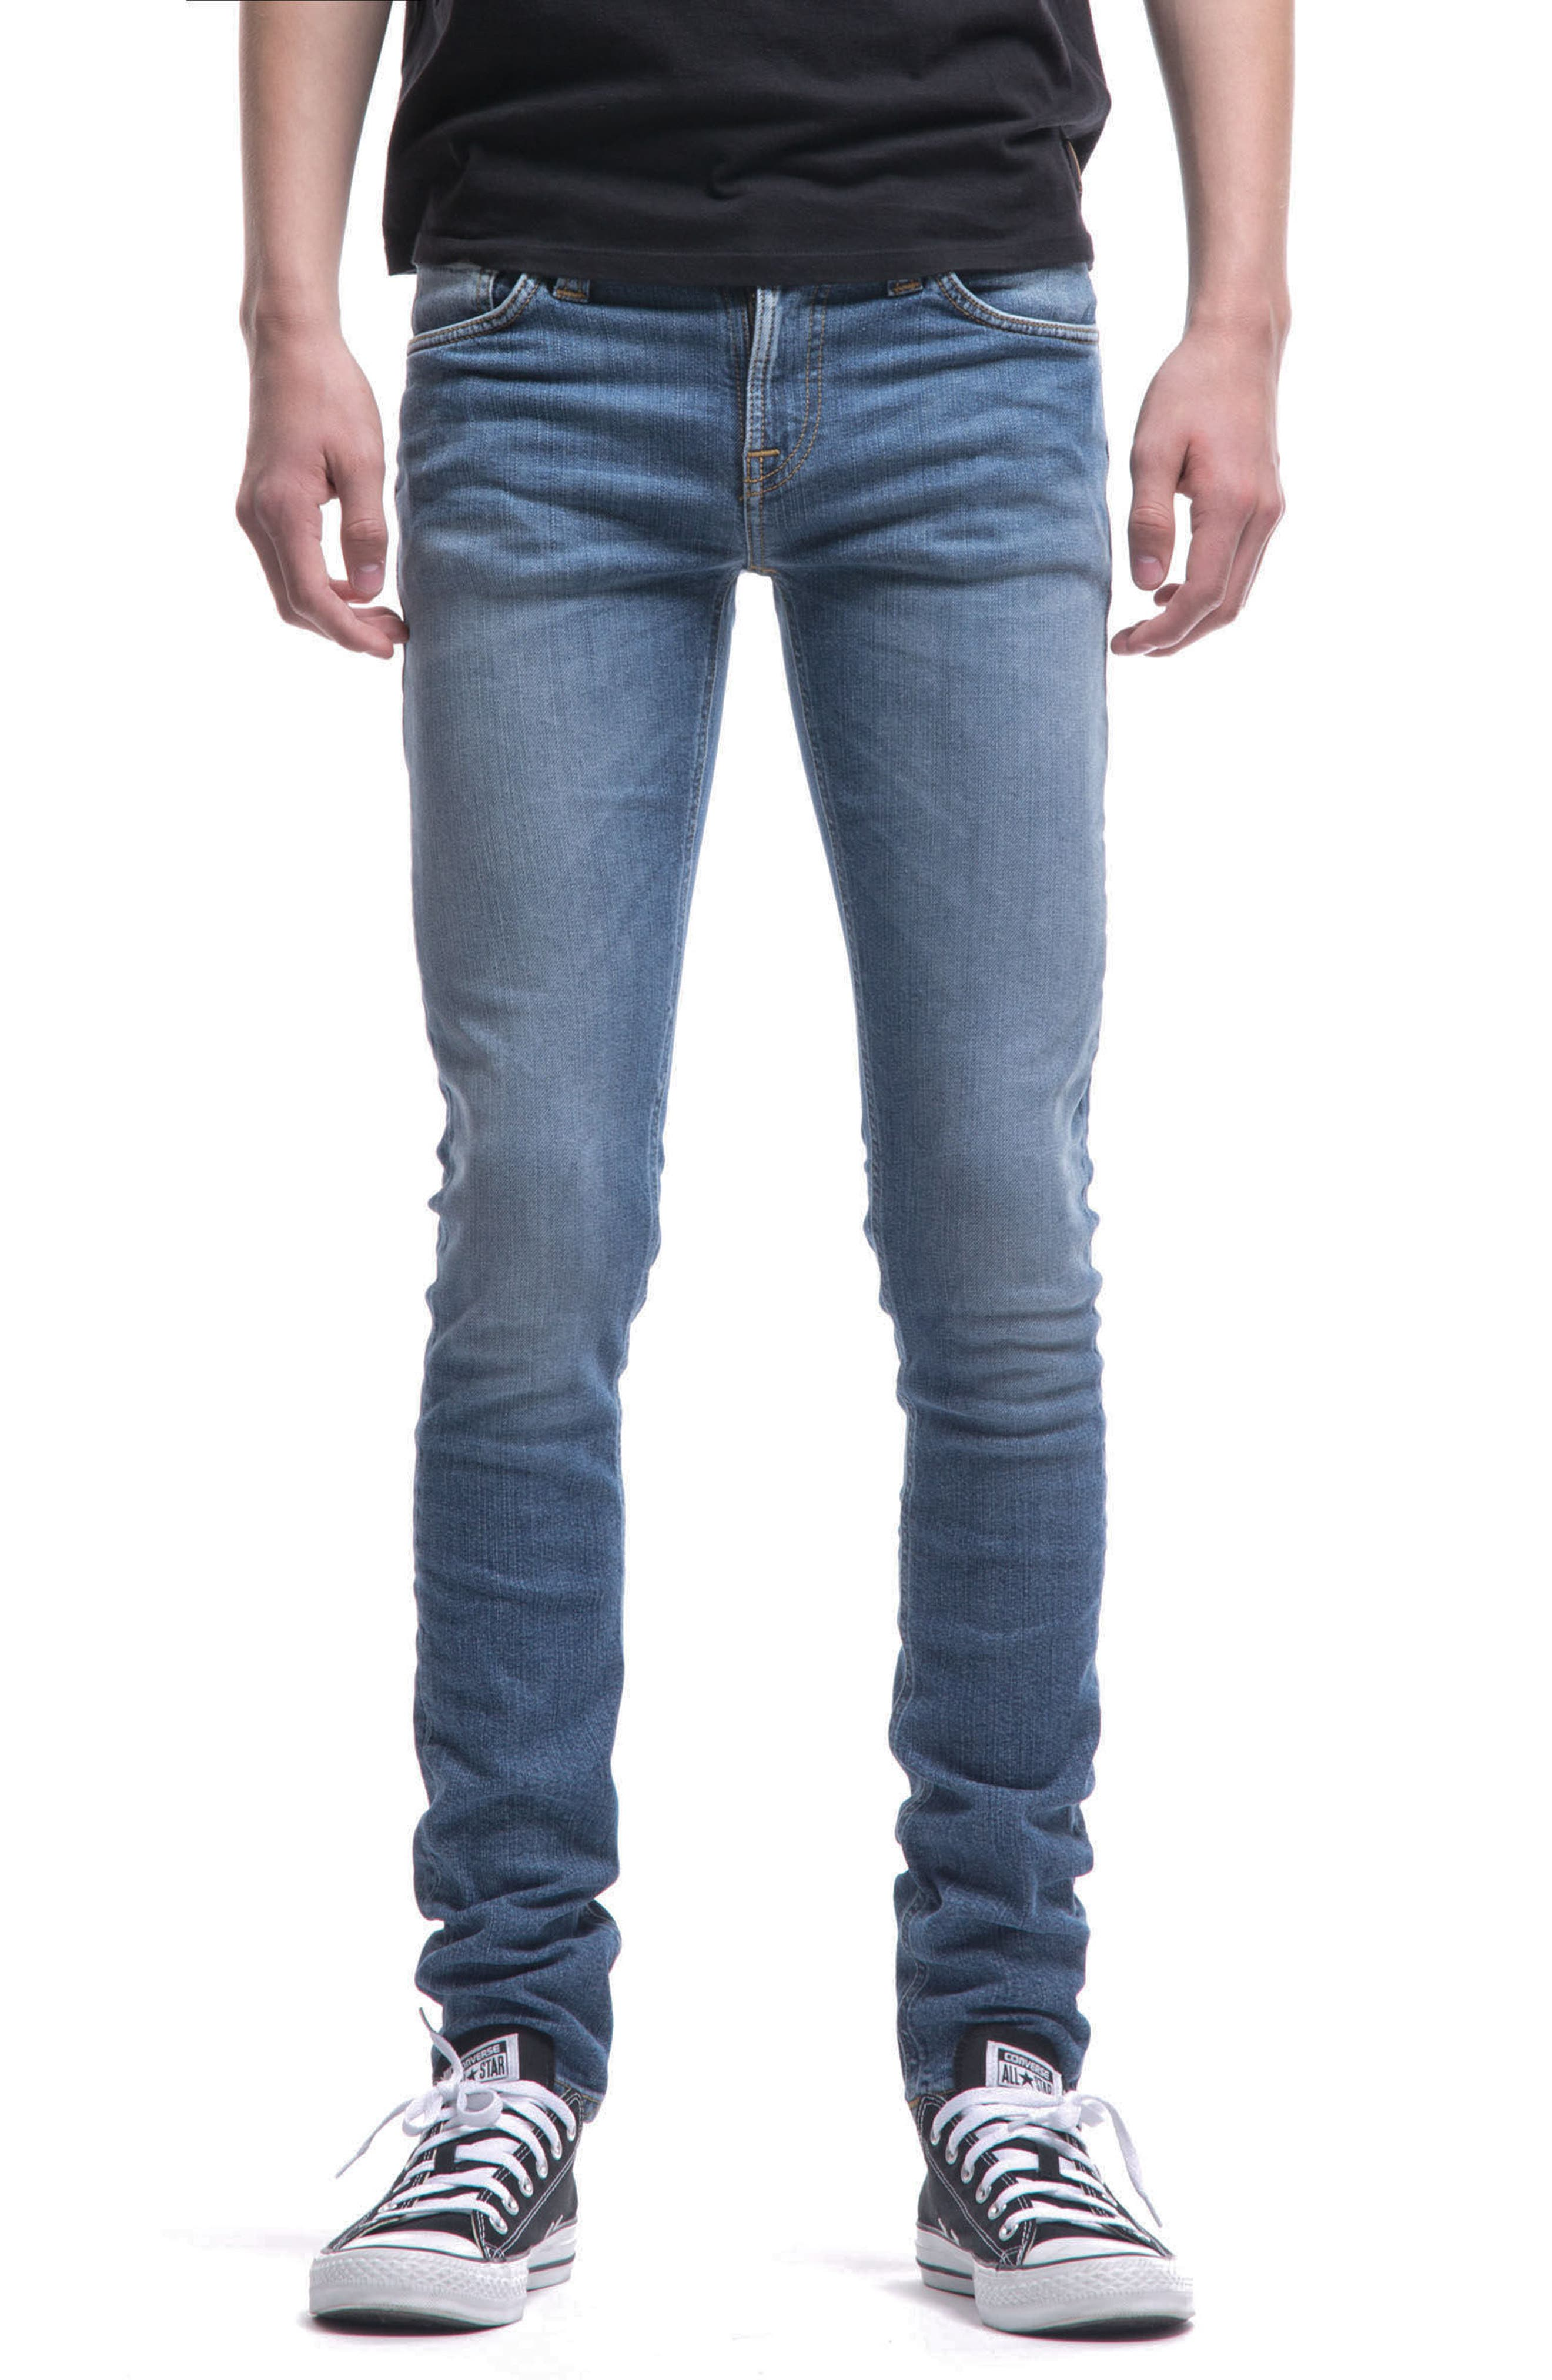 Skinny Lin Skinny Fit Jeans,                             Main thumbnail 1, color,                             Celestial